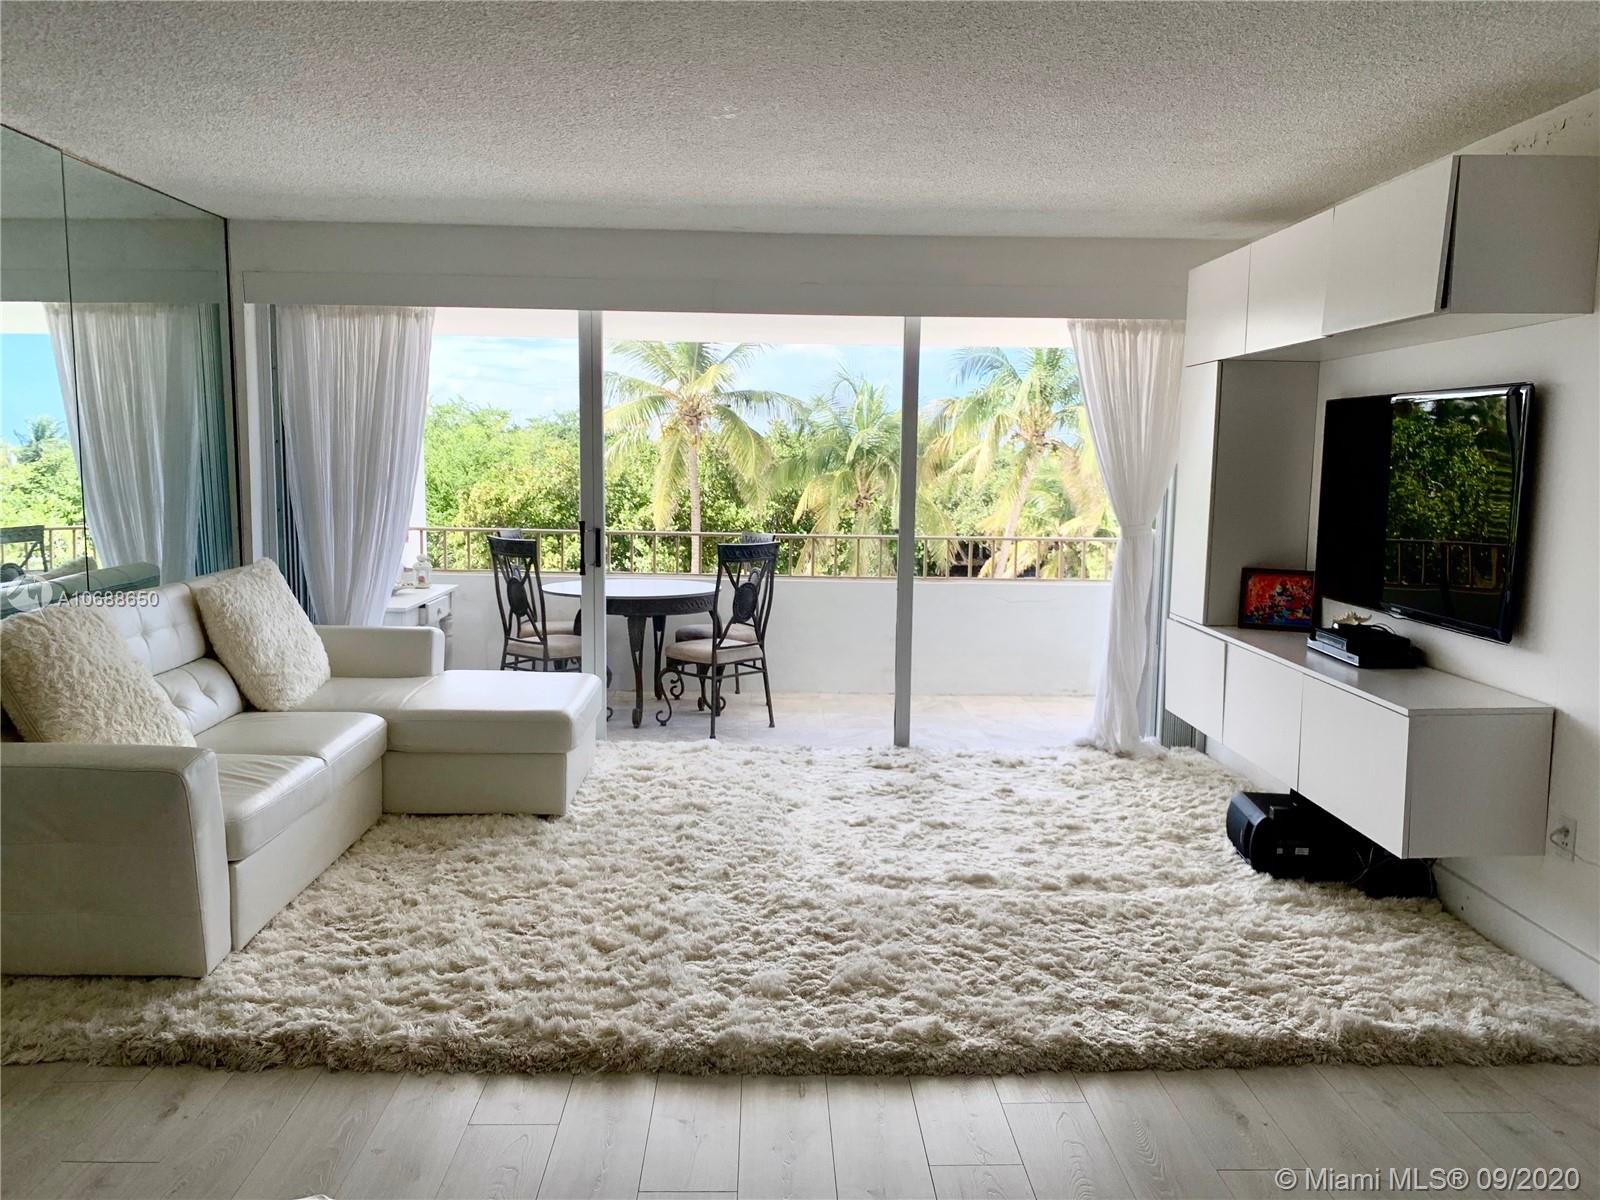 Commodore Club East #302 - 177 Ocean Lane Dr #302, Key Biscayne, FL 33149